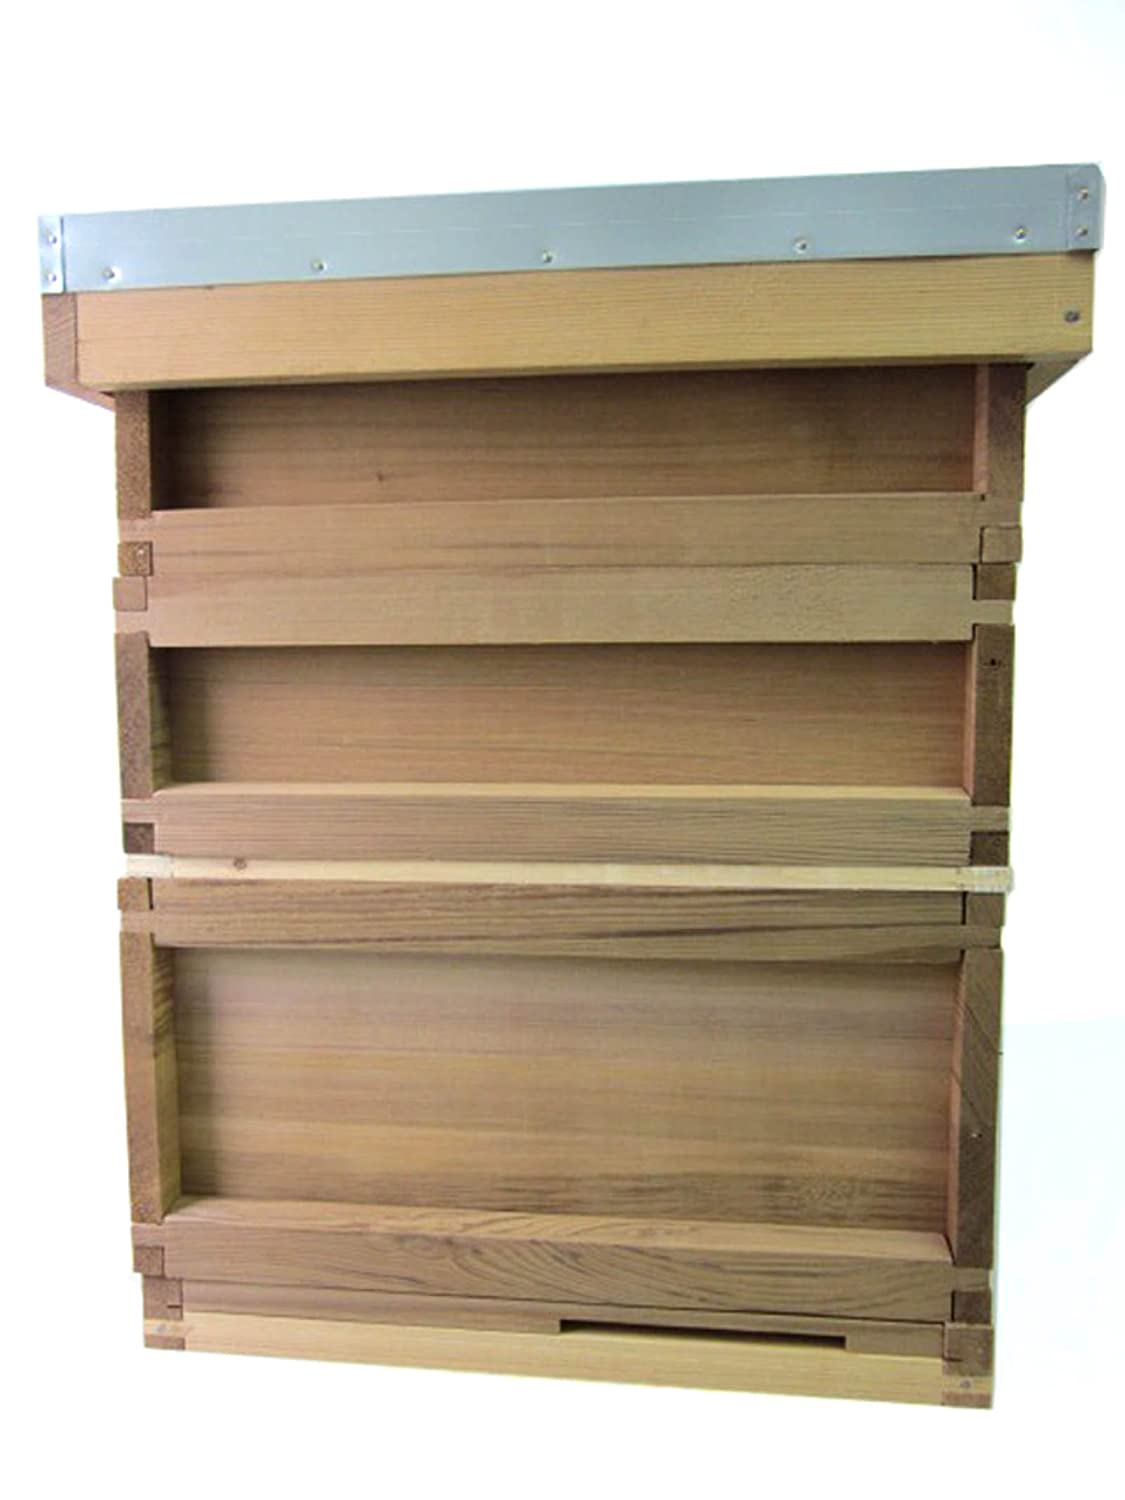 Easipet National Cedar Bee Hive Starter hive with frames and wax by FED21612